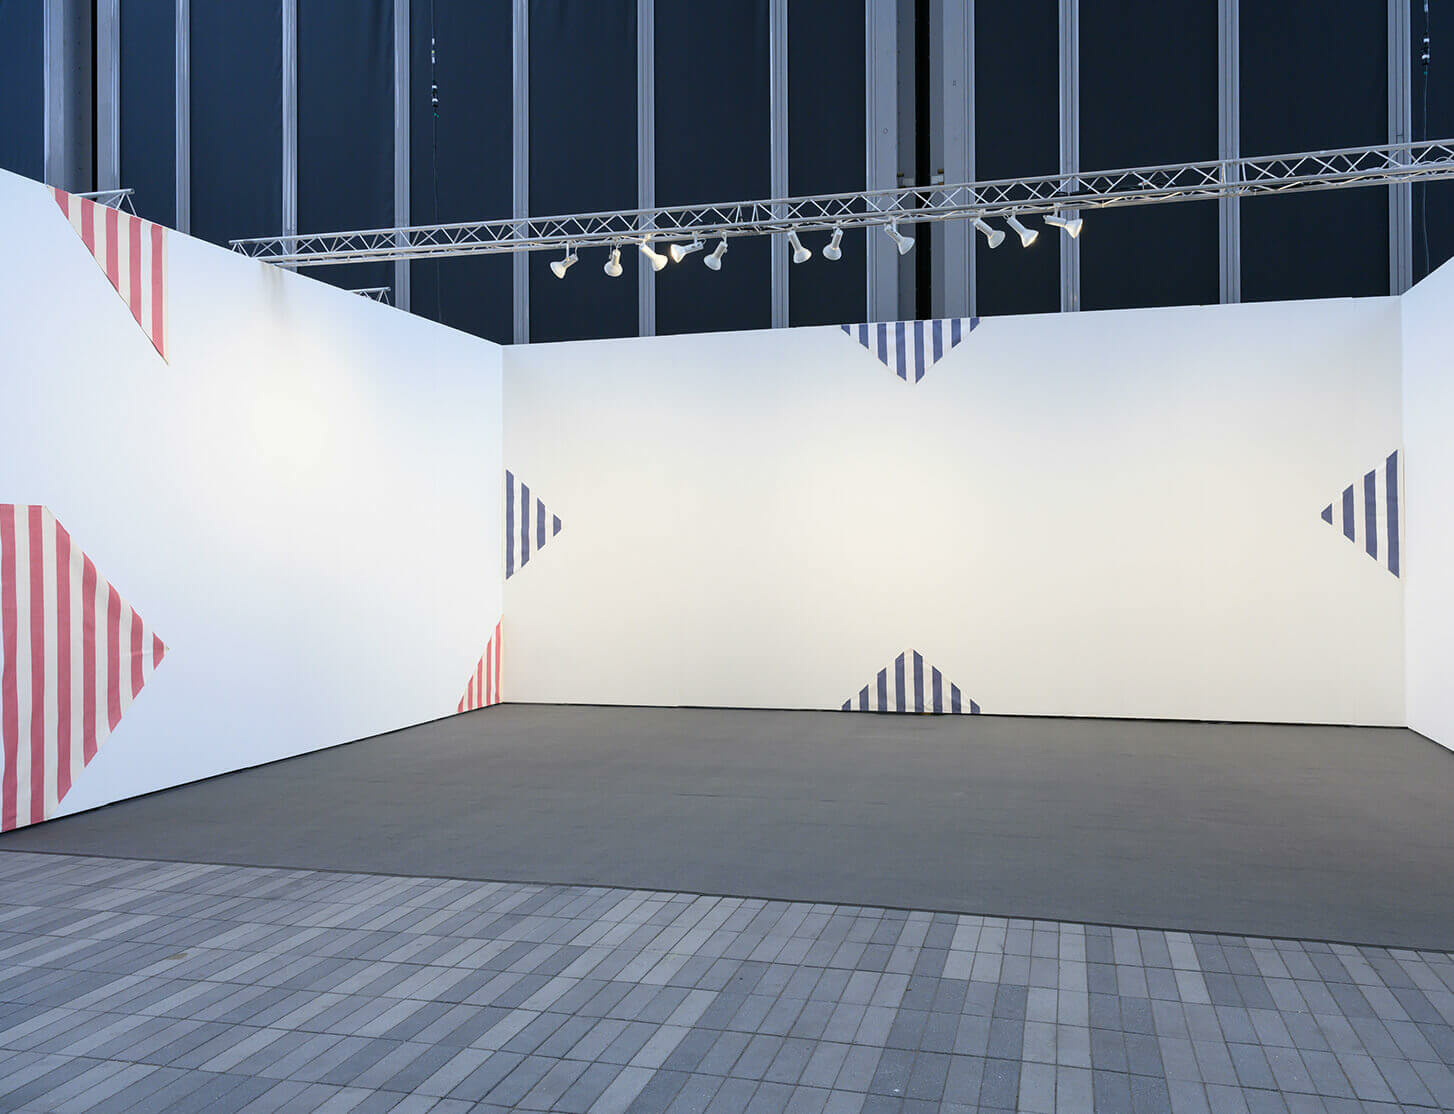 Lisson Gallery's participation in Frieze New York 2021